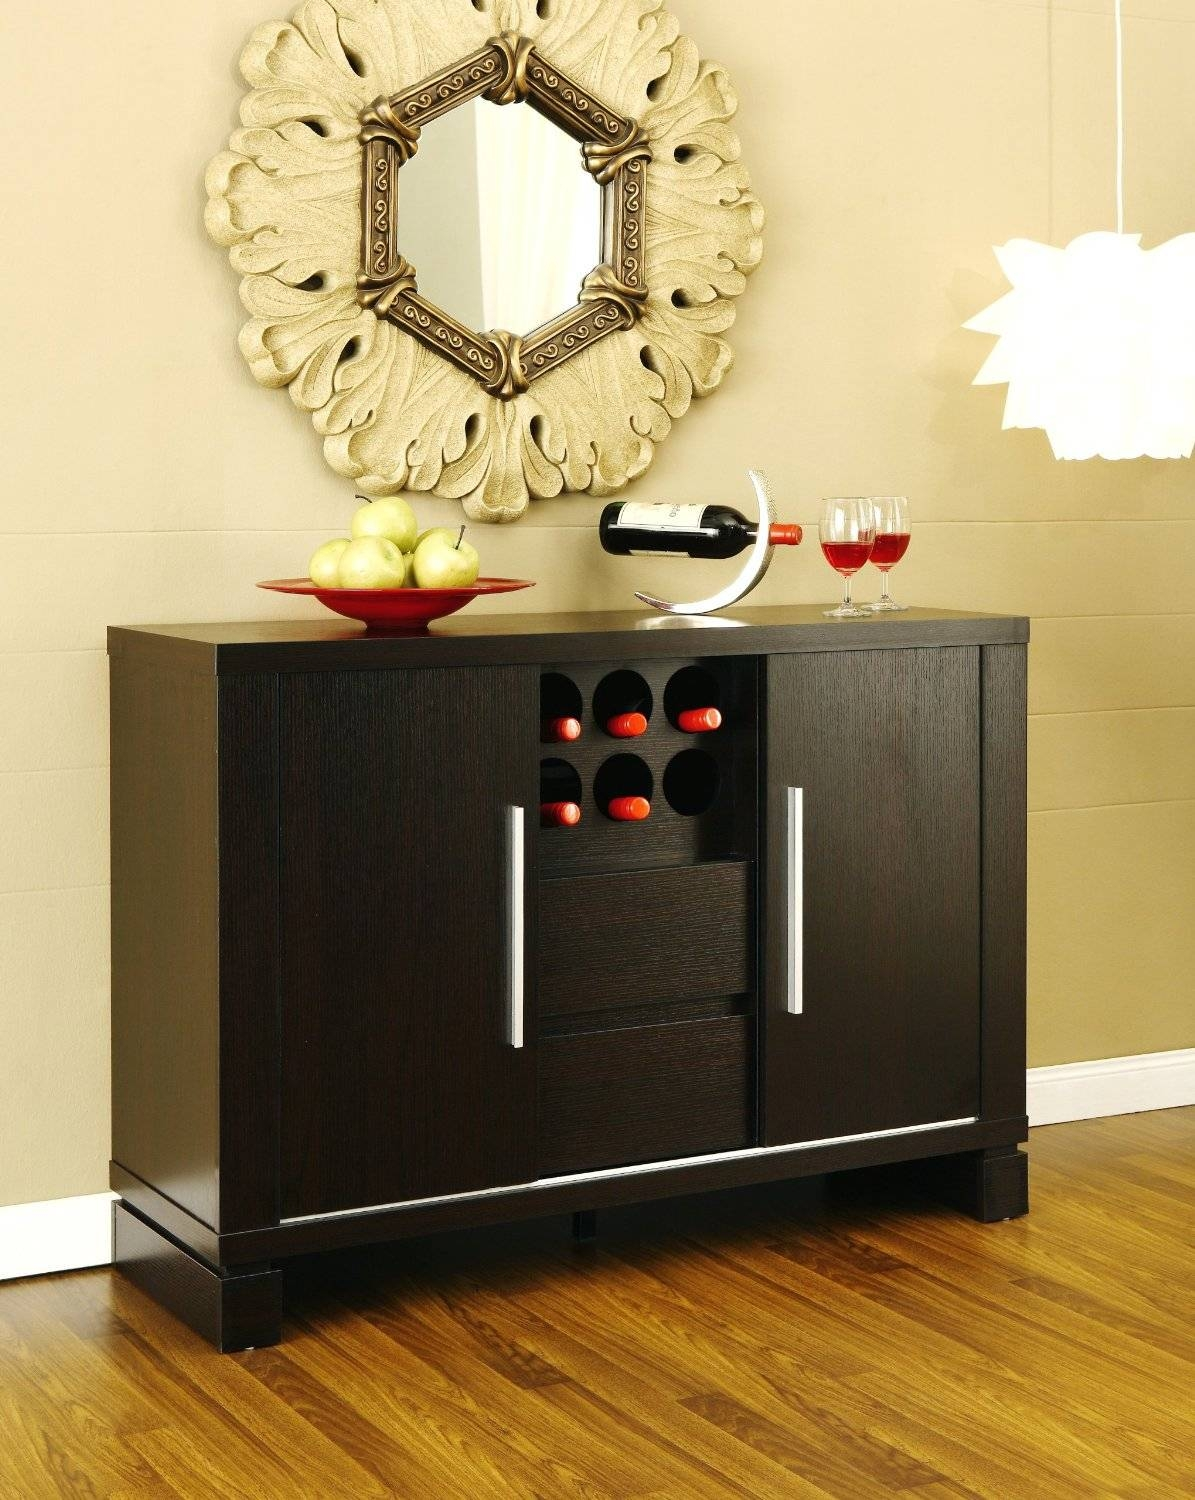 The Difference Among Sideboard, Buffet, Credenza, And Server Pertaining To Stylish Kitchen Sideboards And Buffets (View 9 of 15)